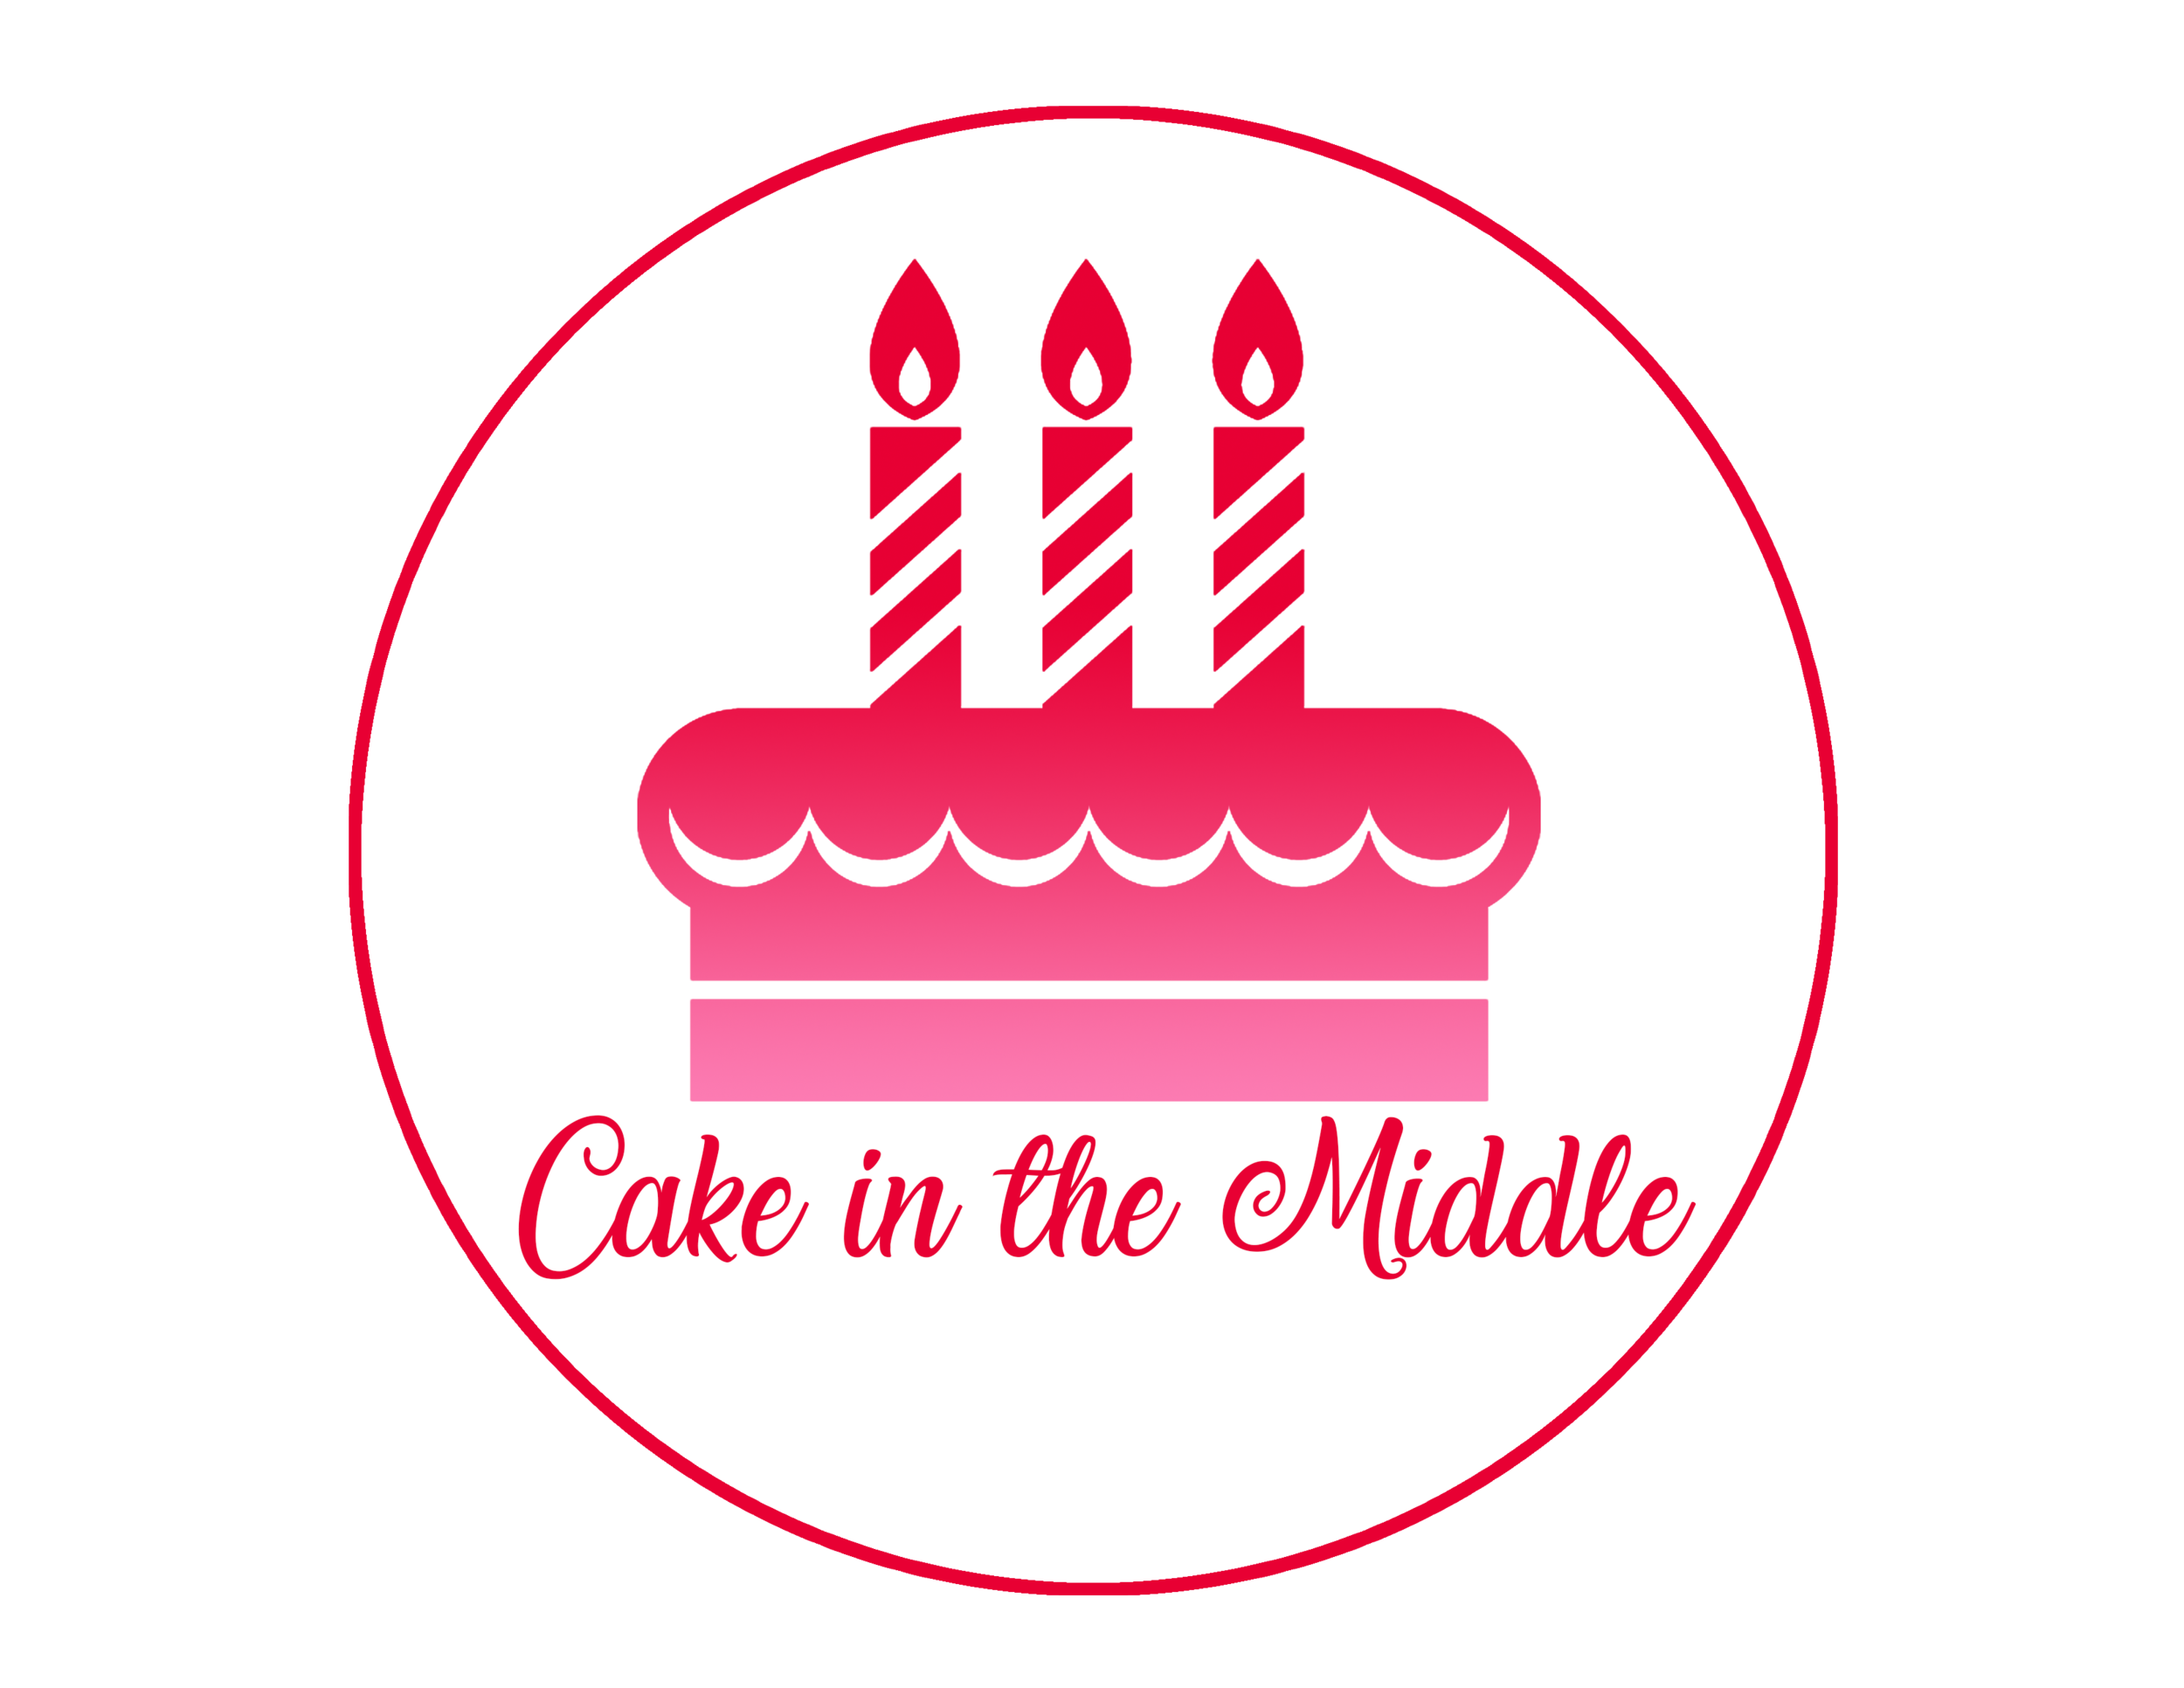 CAKE_IN_THE_MIDDLE_Final.png